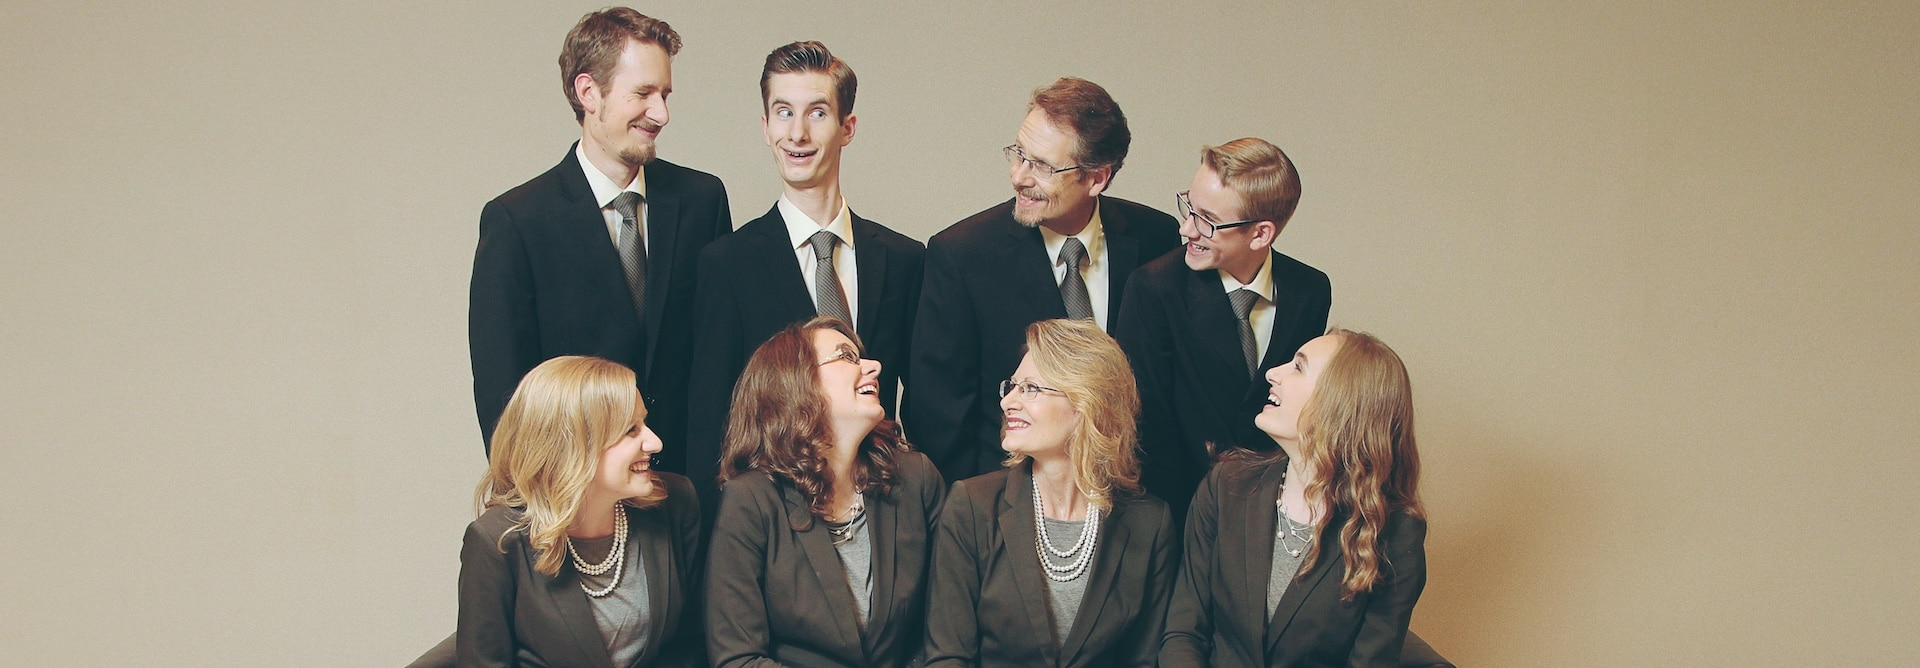 Meet The Garms Family, Minnesota's Family of Southern Gospel